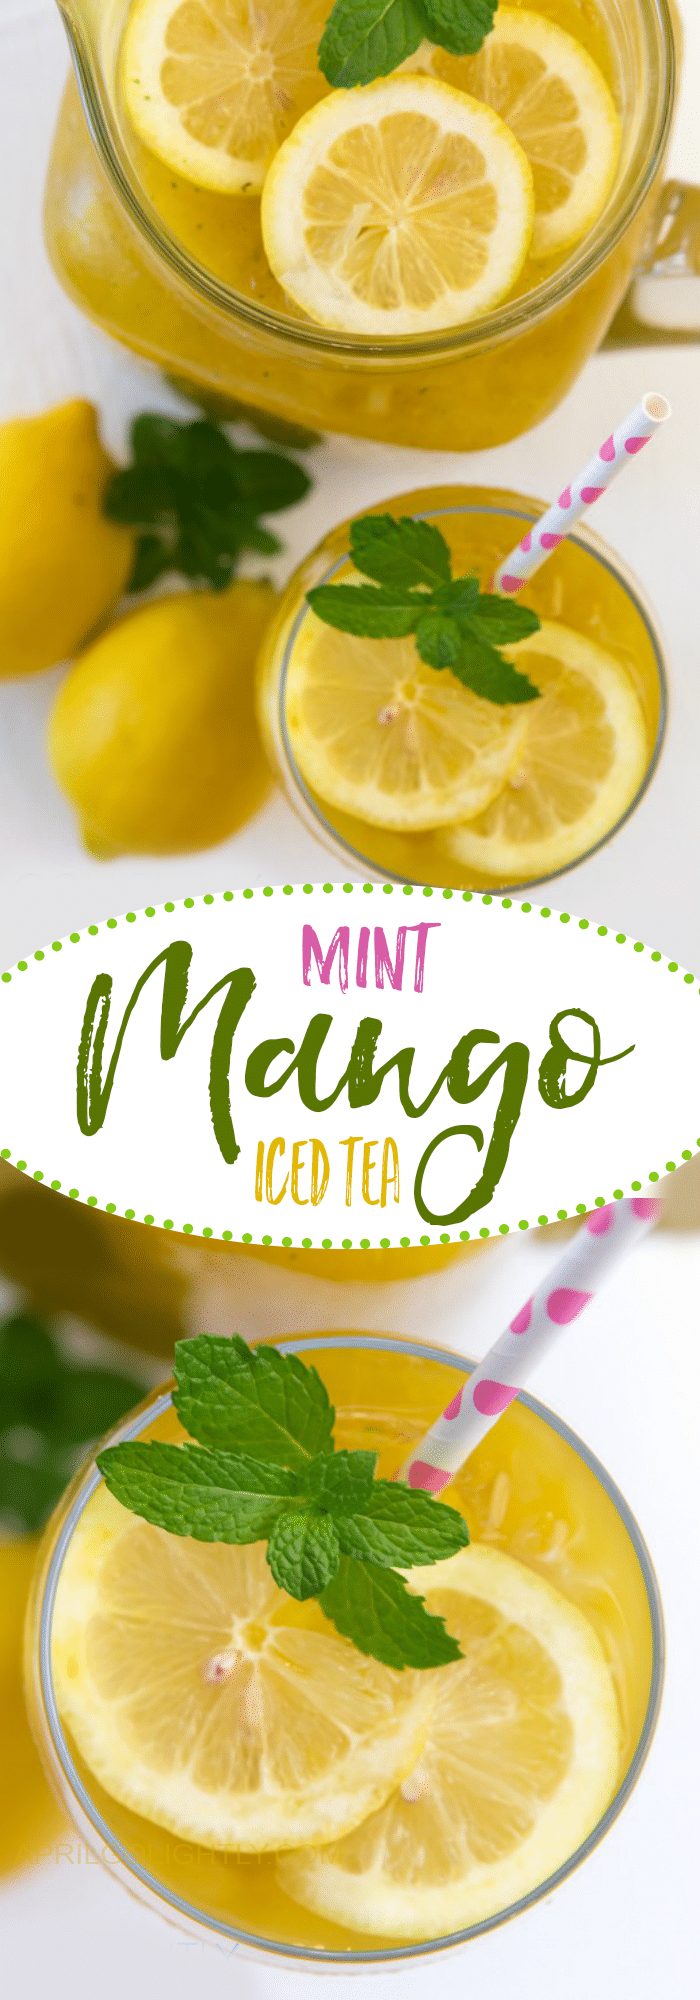 Mango-Mint-Iced-Tea-Drink-Recipe-